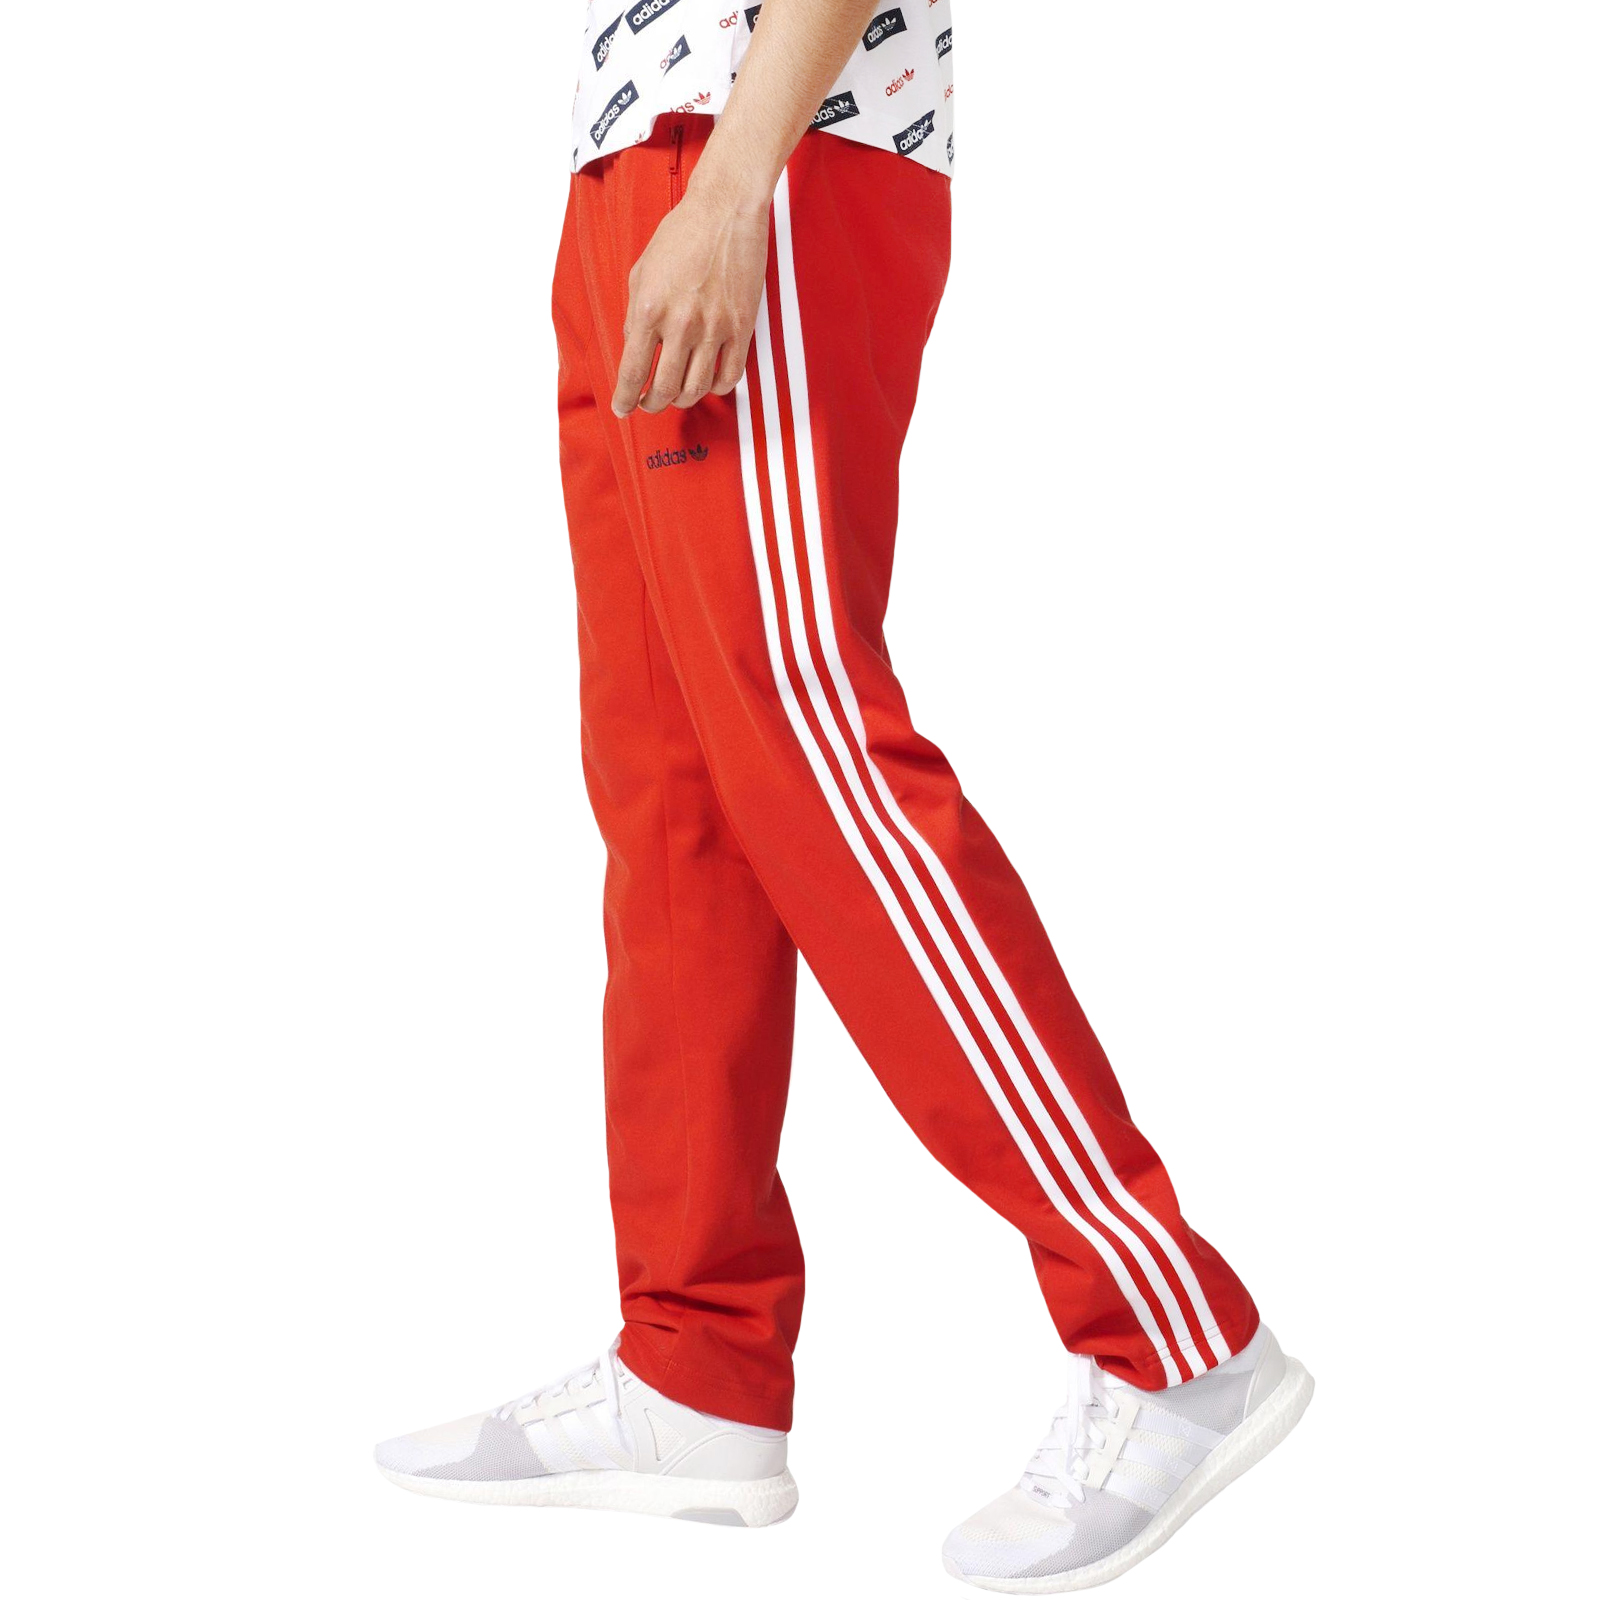 bf6626165 Details about adidas Originals Mens Block TP Tapered Casual Tracksuit Track  Pants Bottoms -Red